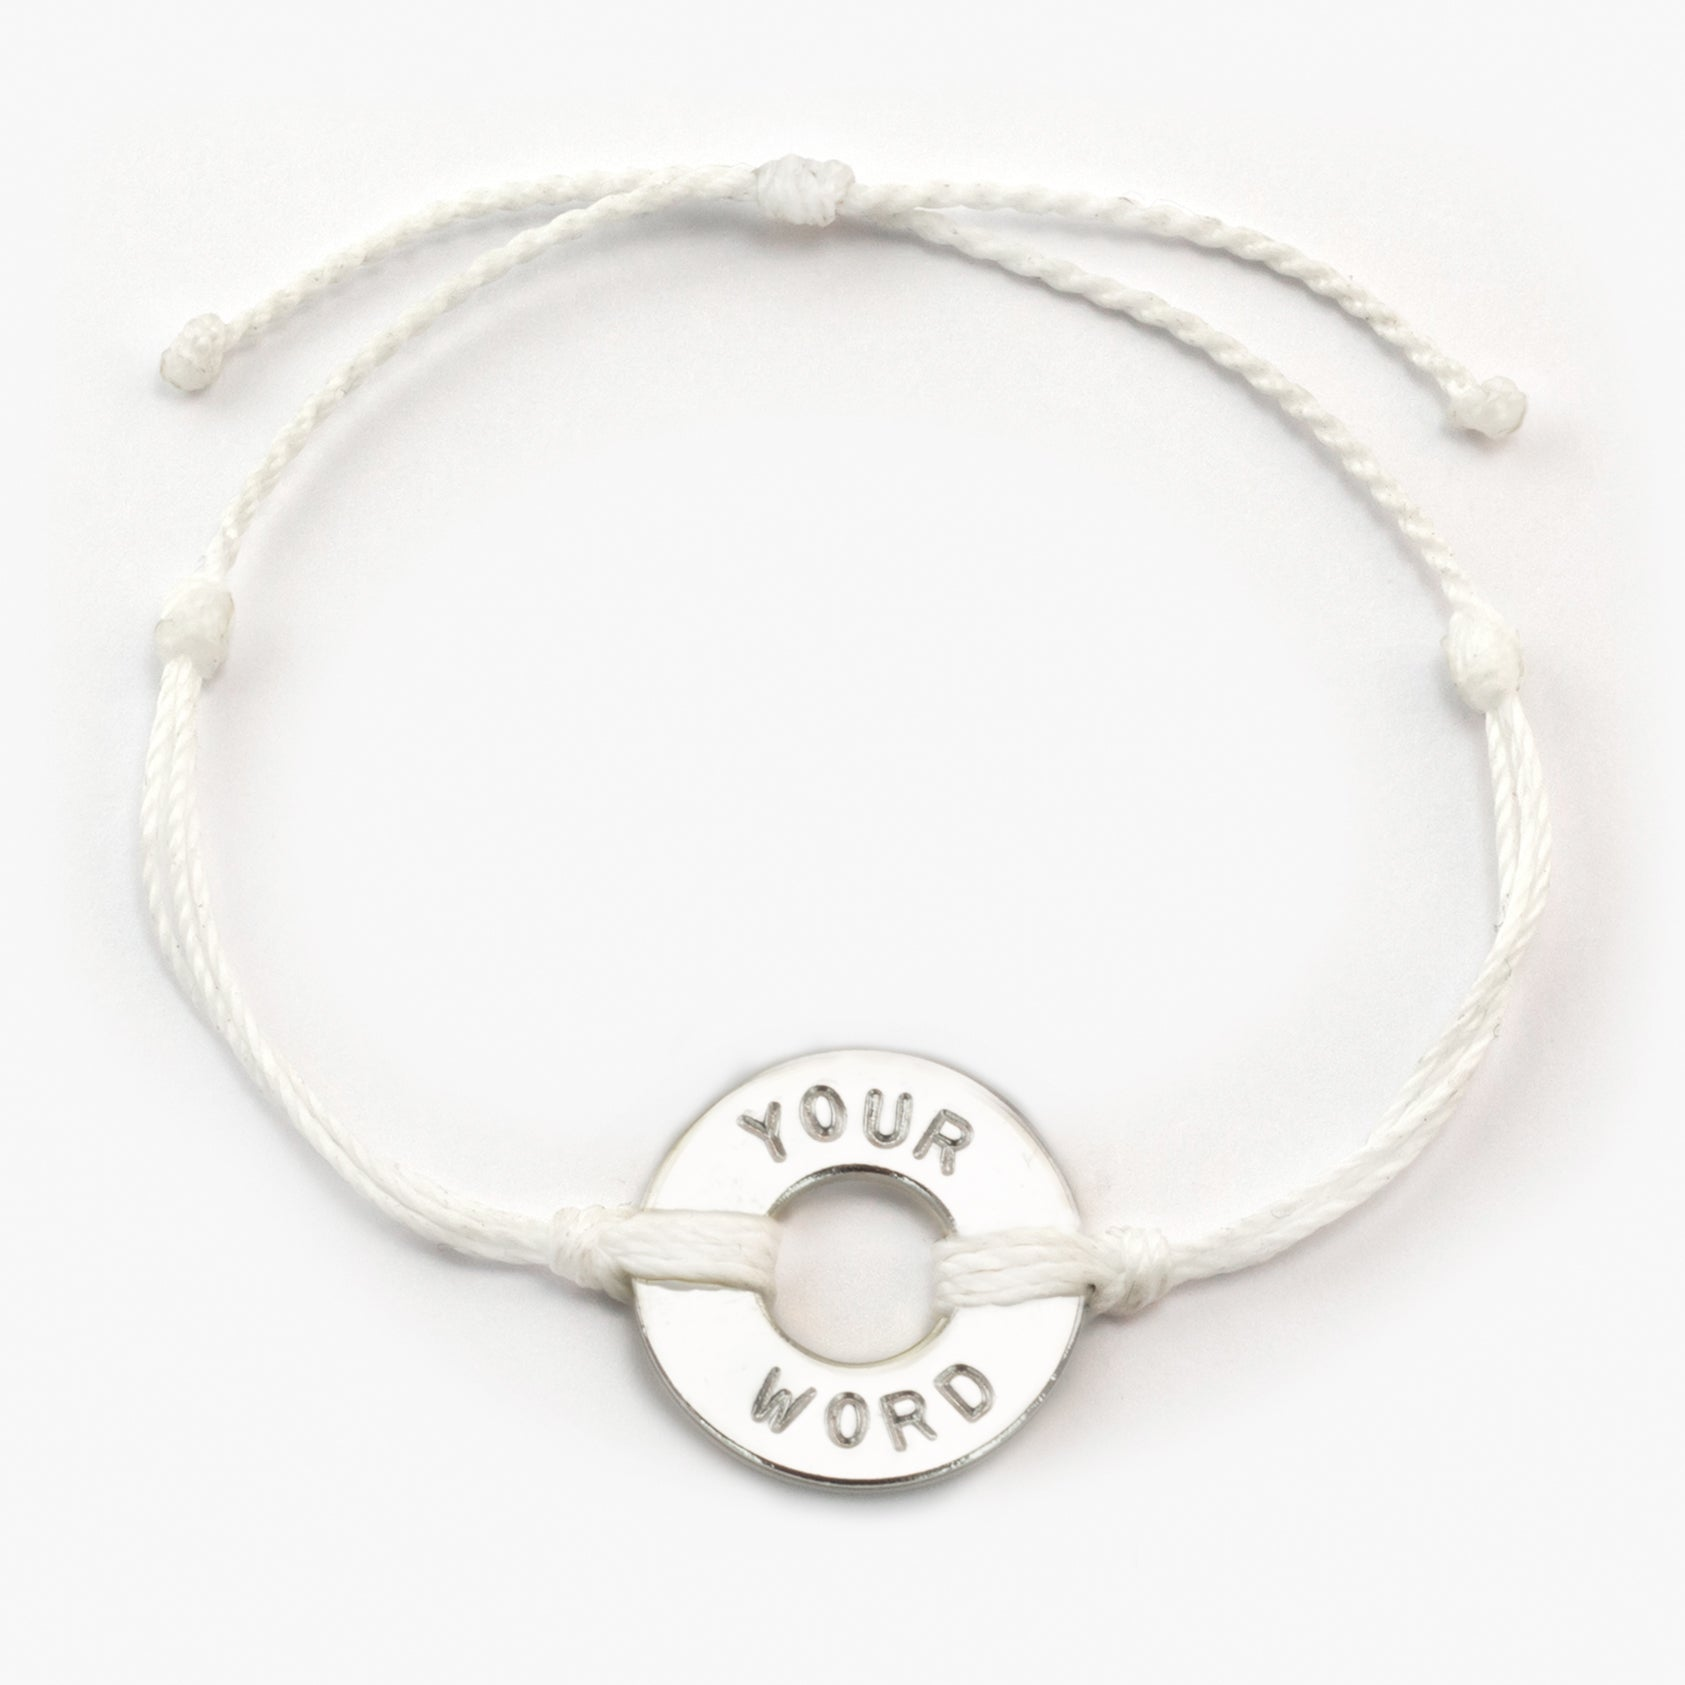 MyIntent Custom Twist Bracelet White String with Silver Token